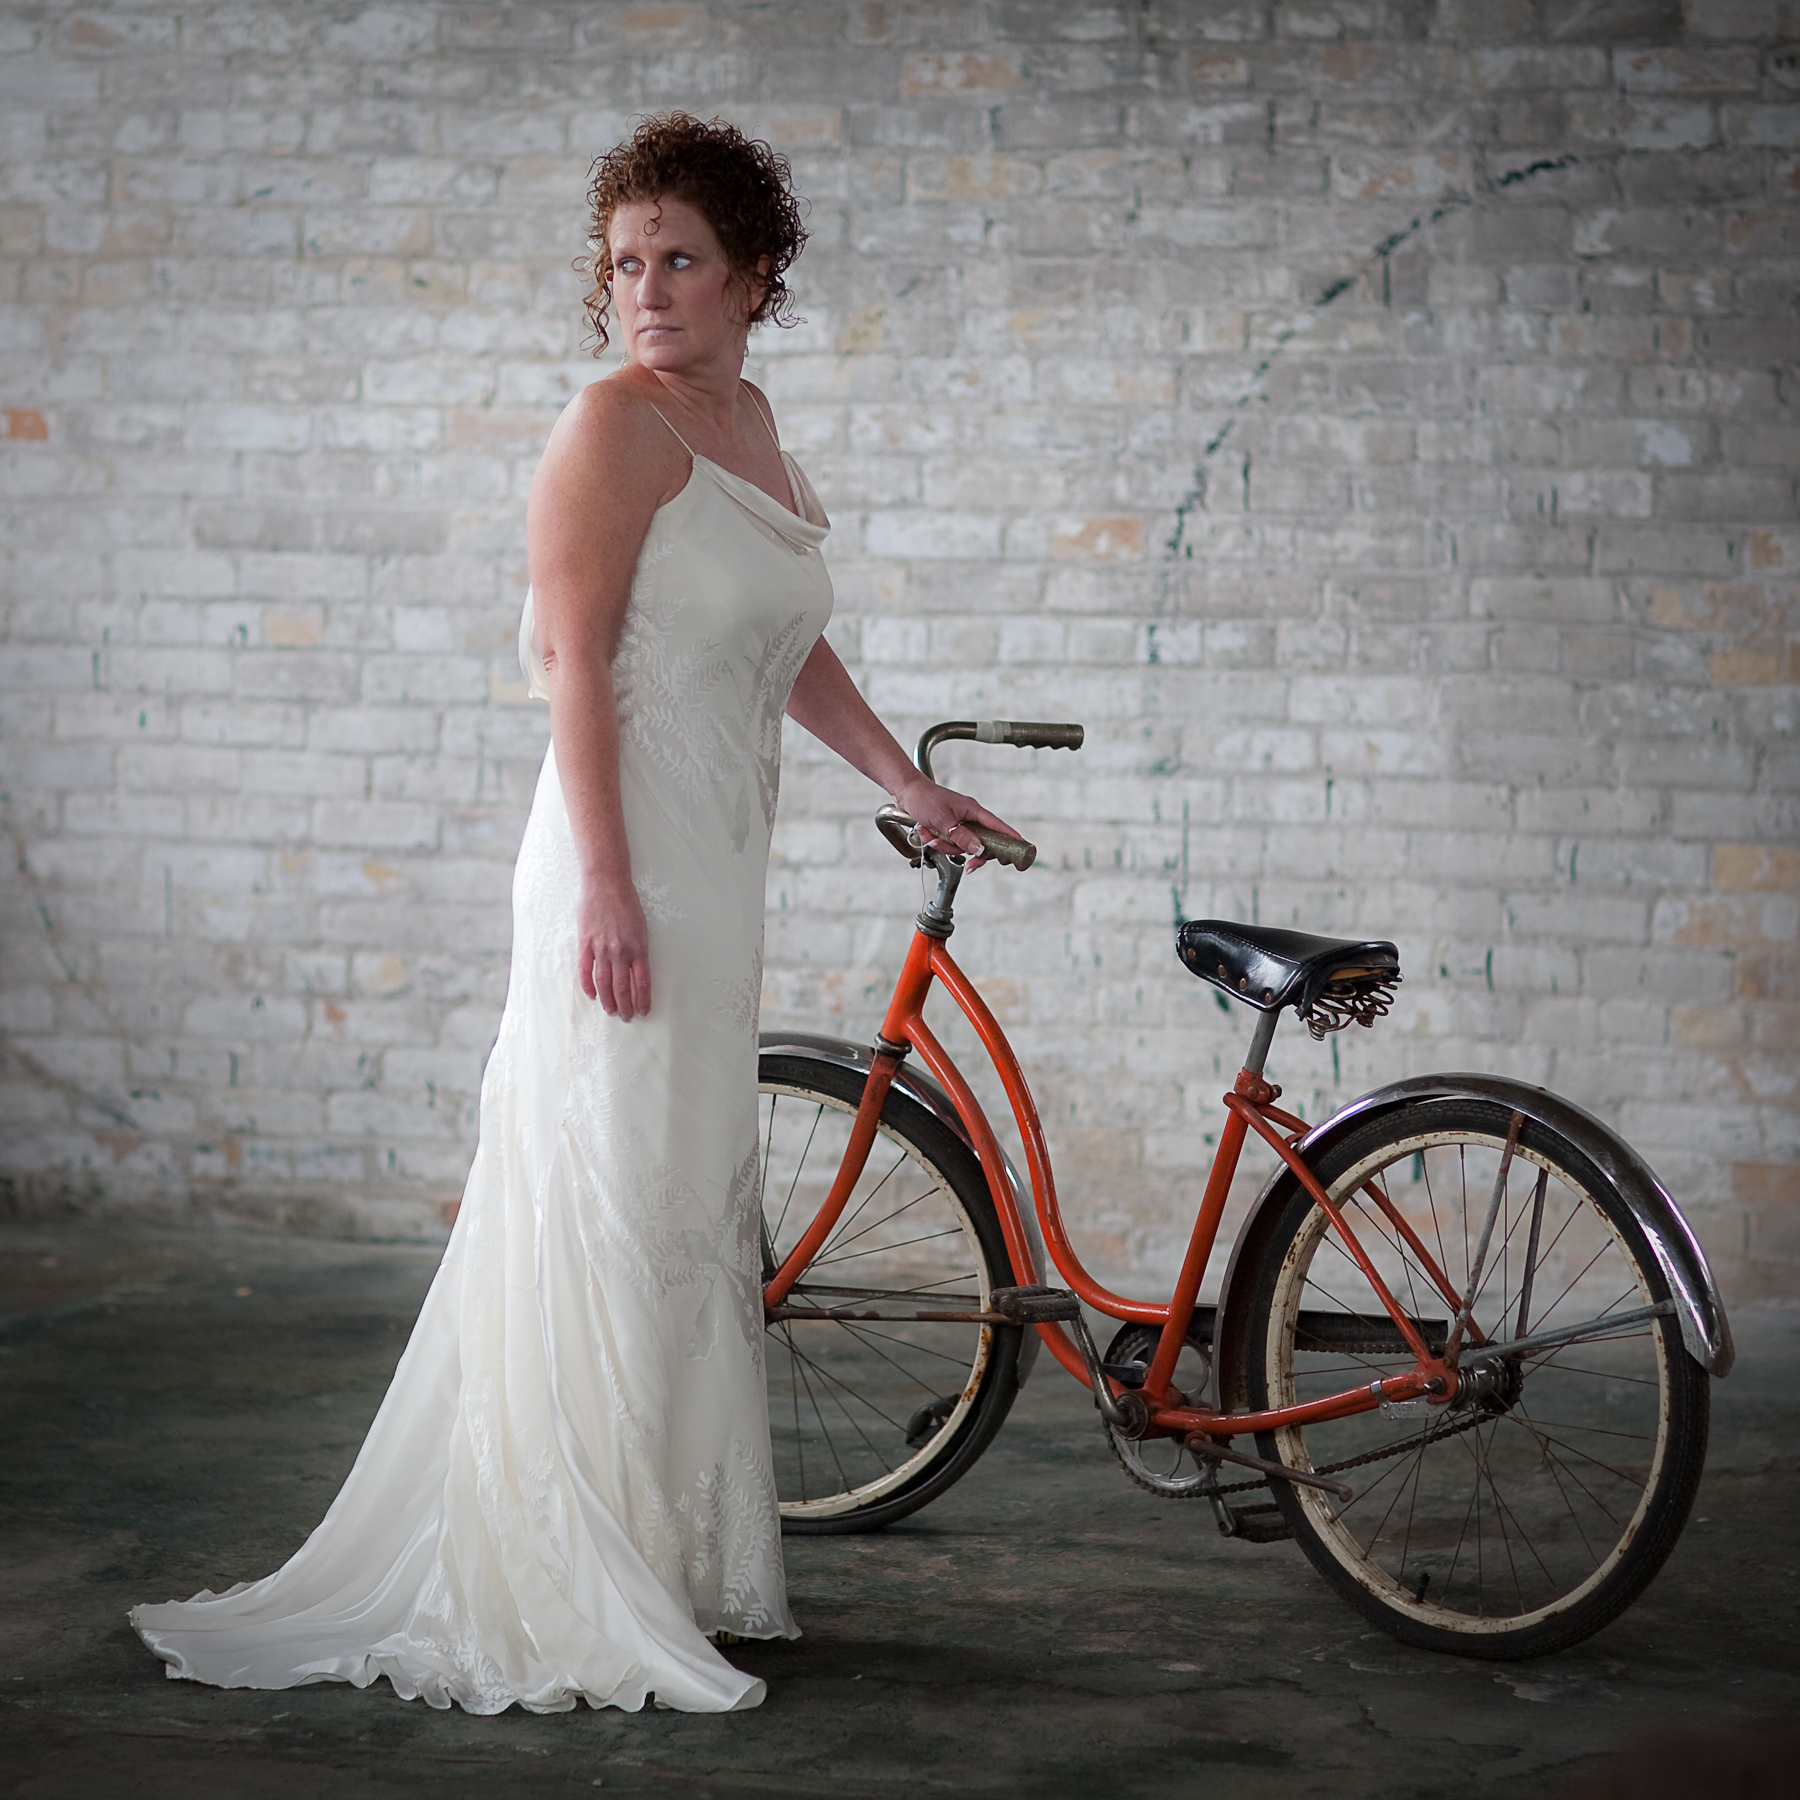 Inspiration, Wedding Dresses, Fashion, orange, dress, Bride, Board, The, Trash, Urban, Warehouse, Bike, Pheifer photography llc